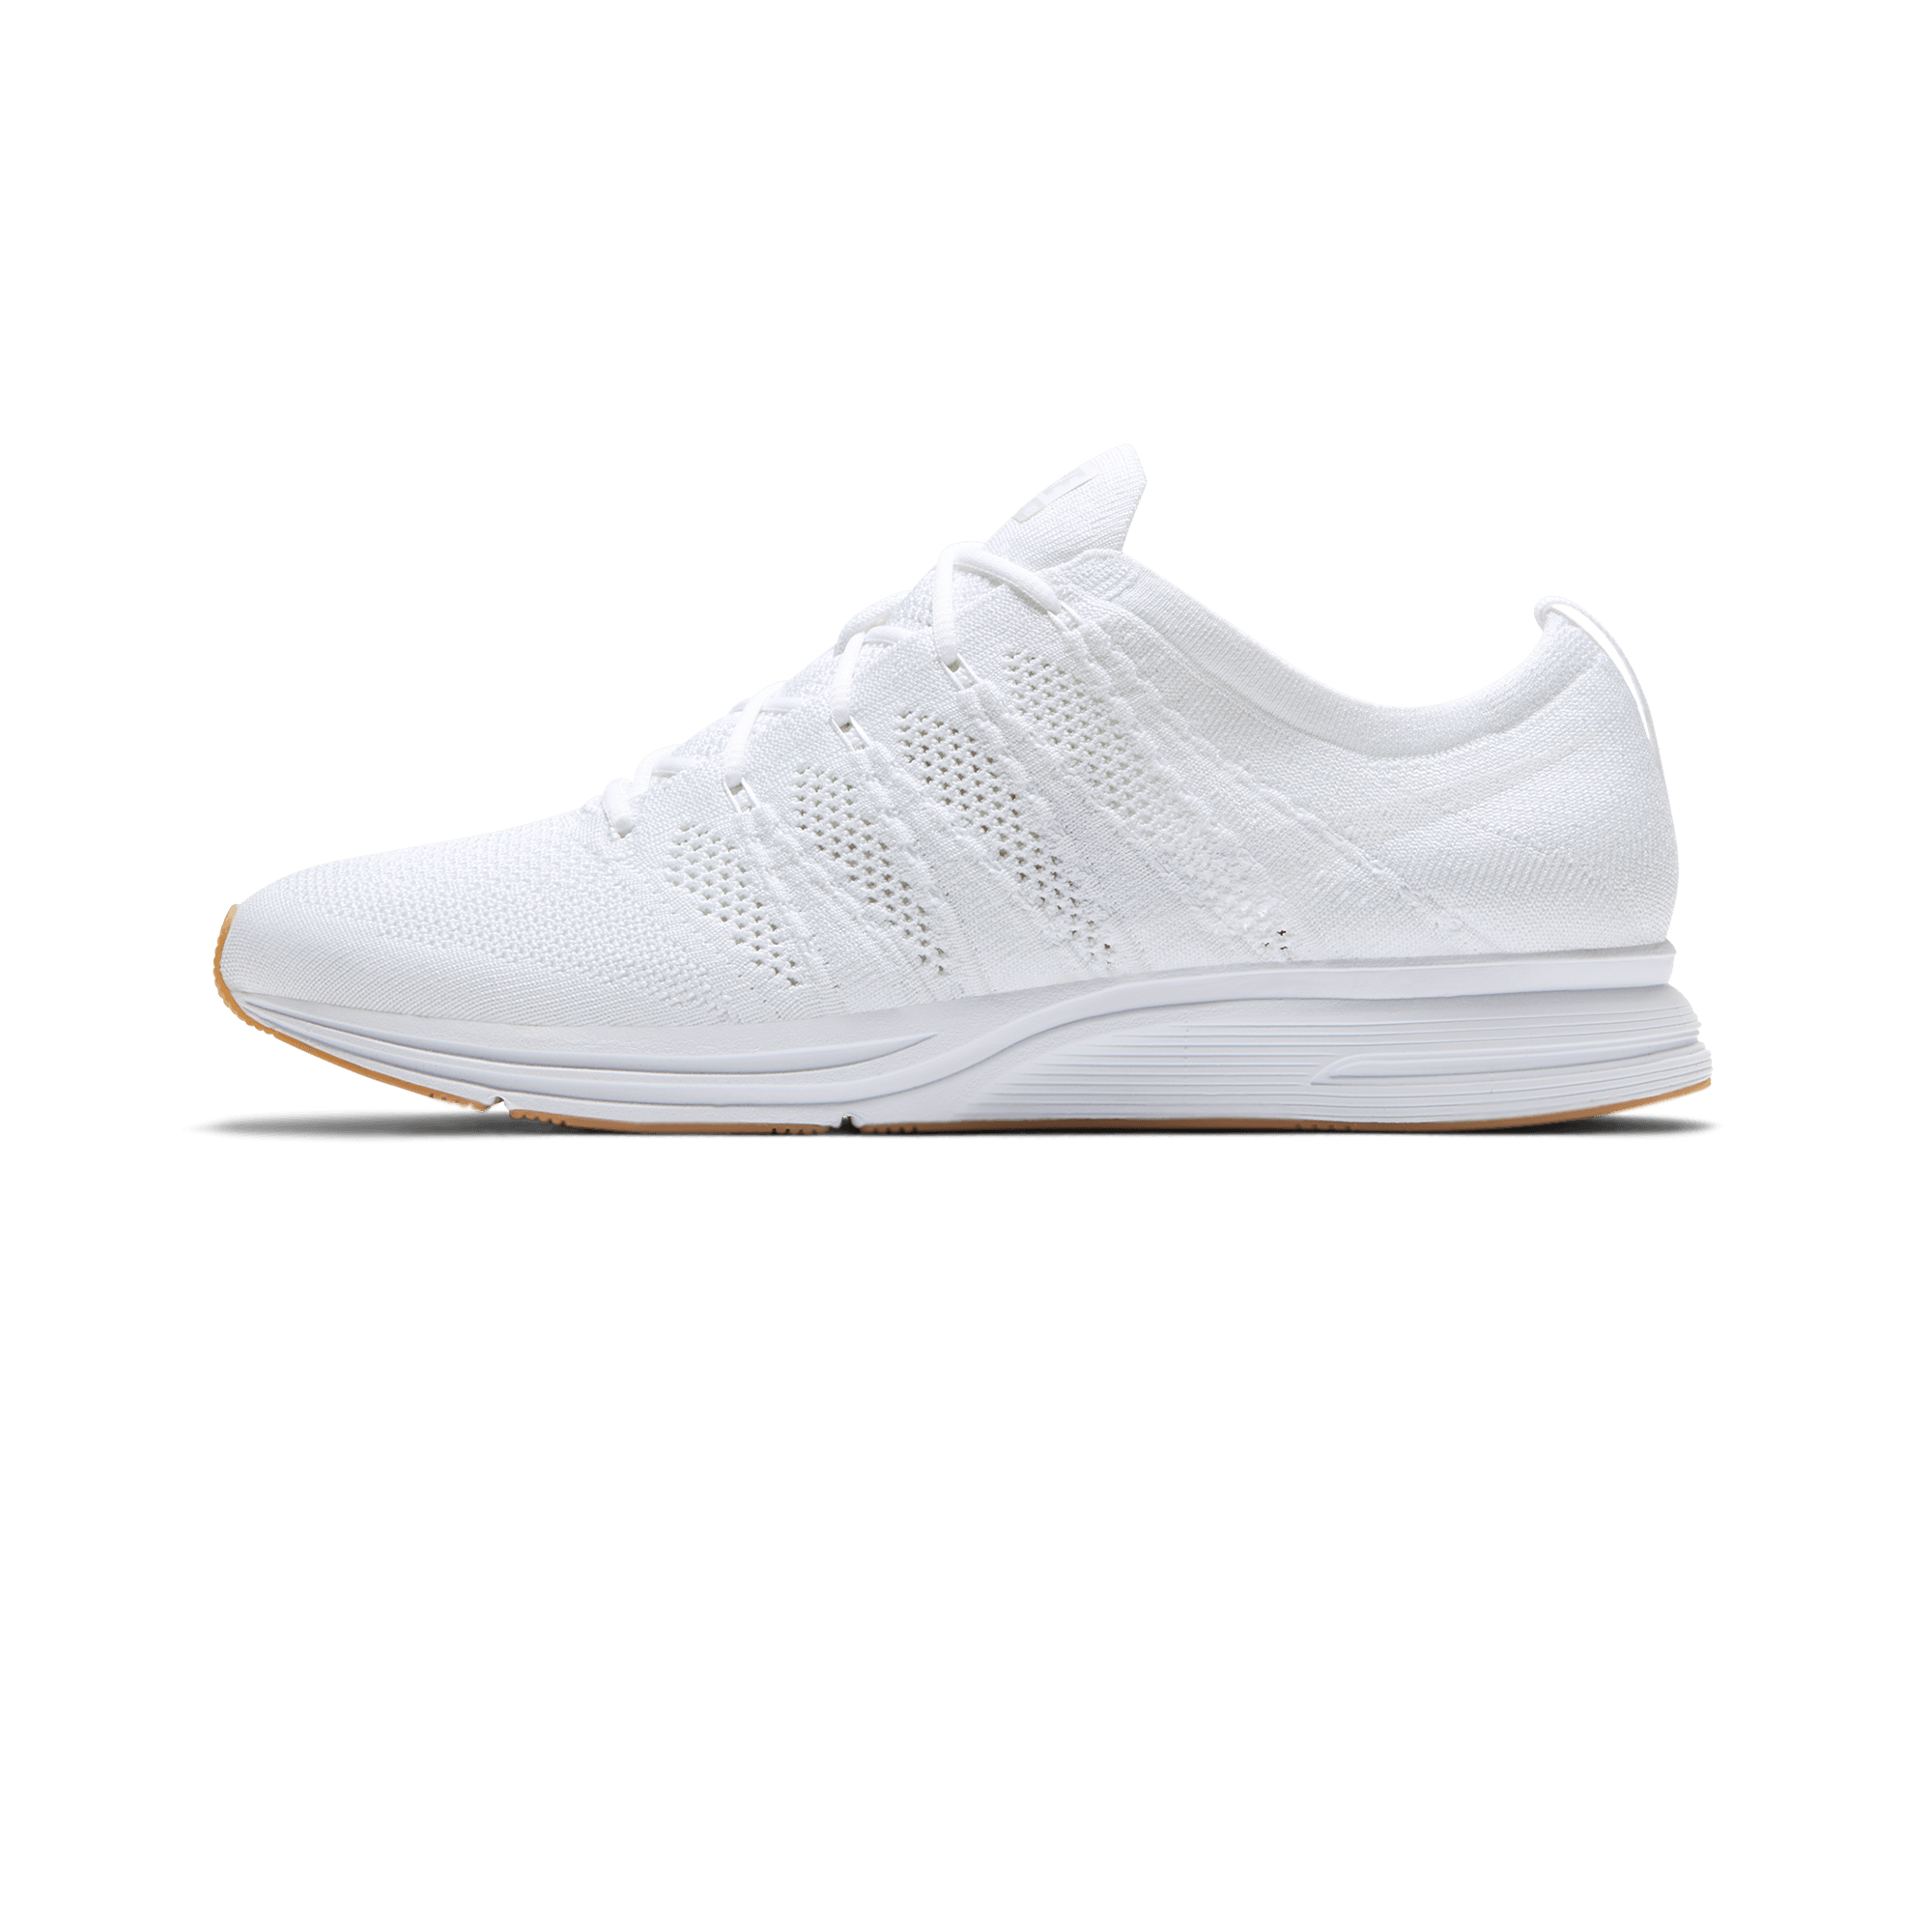 0f3a30ae6700 Nike Flyknit Trainer white   gum light brown - Uomo